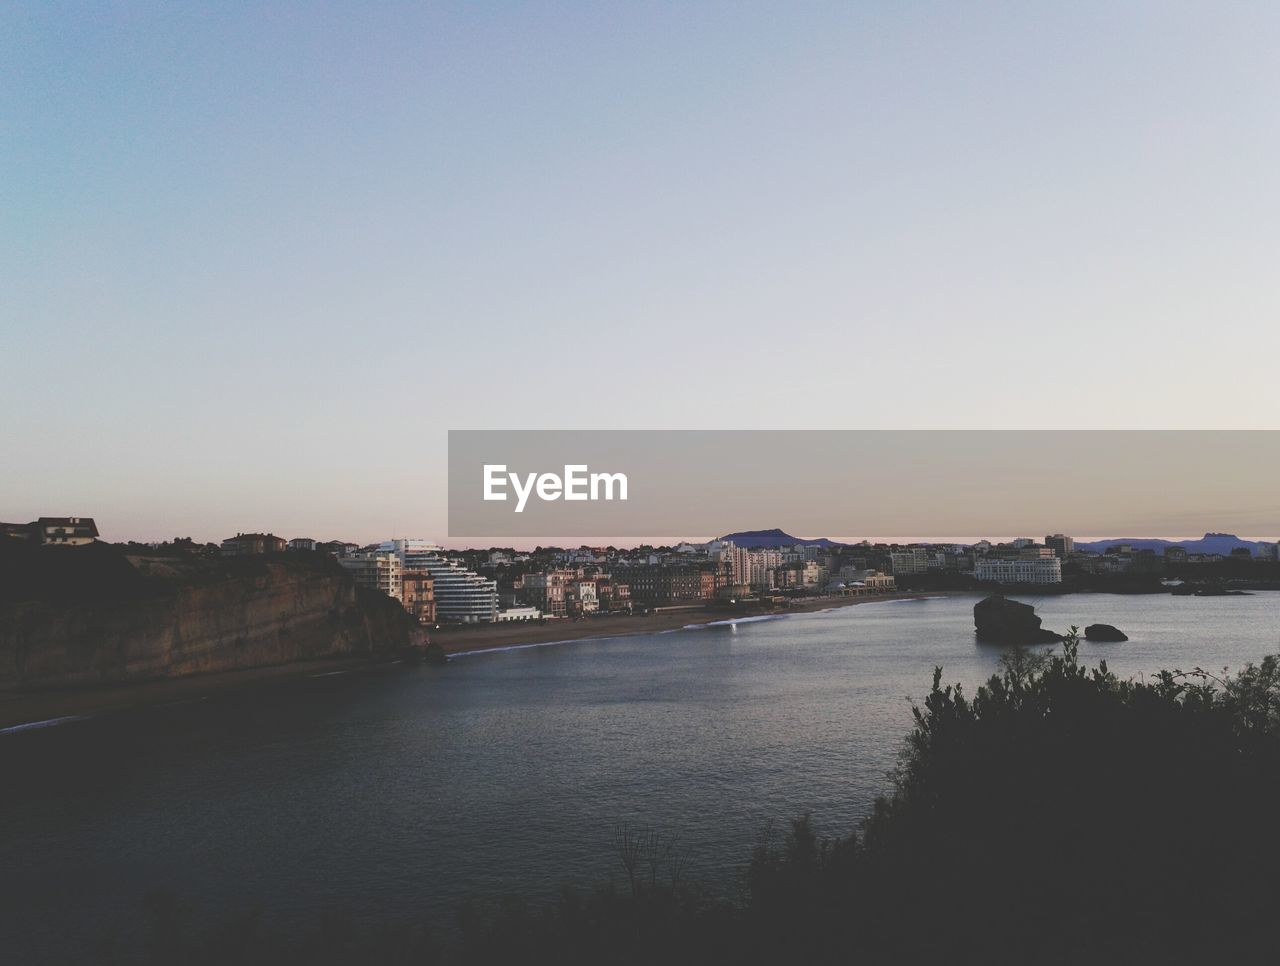 architecture, built structure, water, river, city, copy space, cityscape, building exterior, connection, clear sky, outdoors, no people, travel destinations, bridge - man made structure, sunset, nature, chain bridge, sky, day